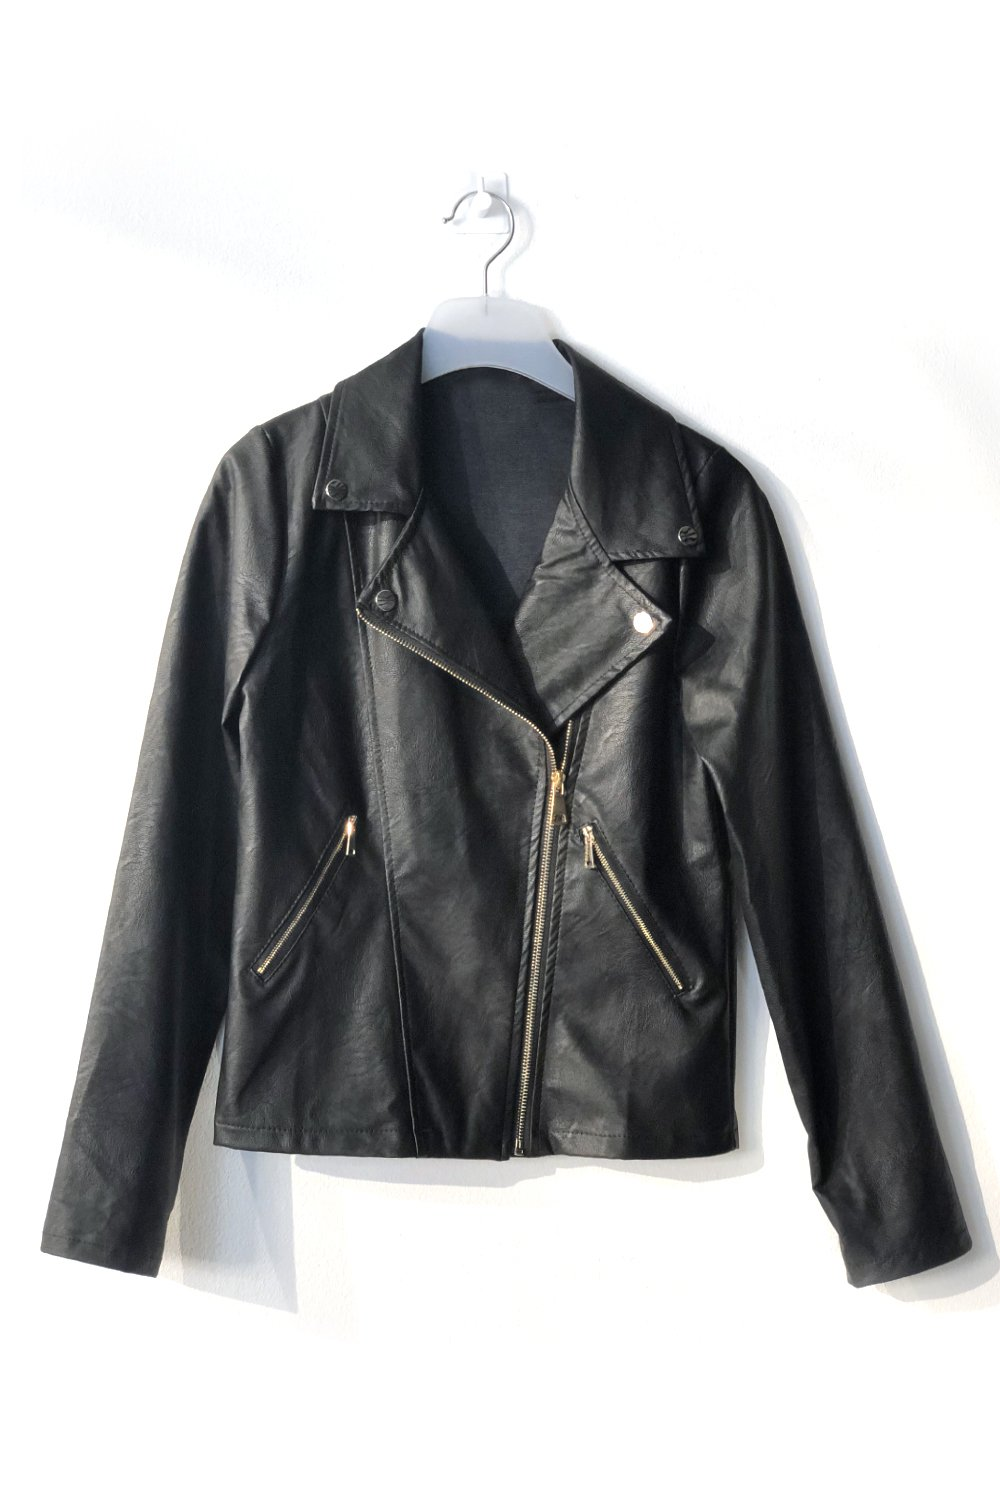 Pleather Jacke Rock - The Fashionboutique - Colloseum